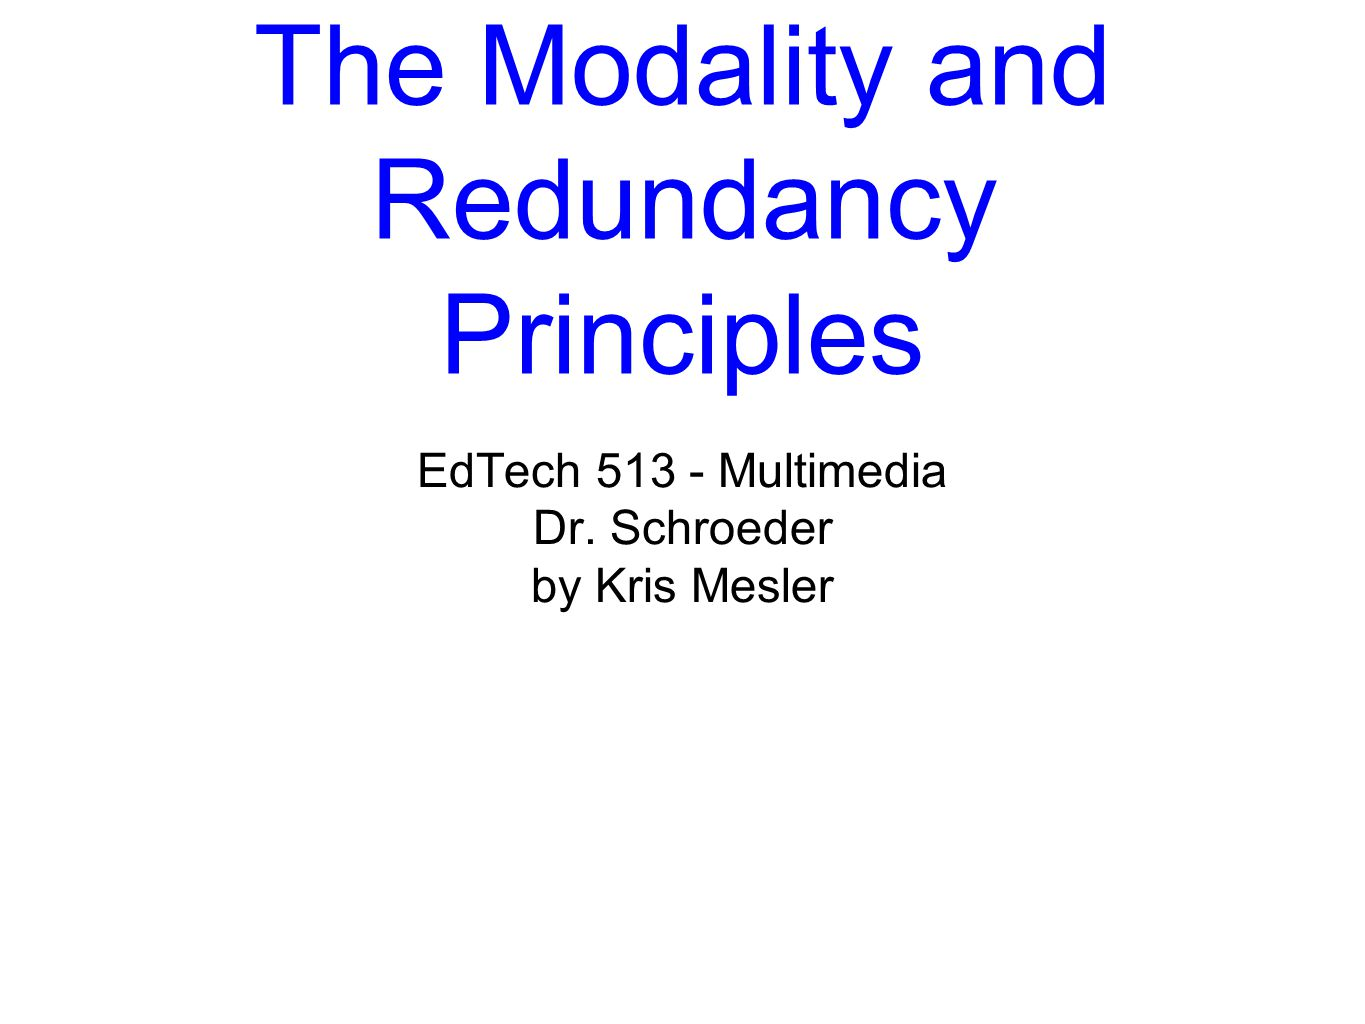 The Modality and Redundancy Principles EdTech 513 - Multimedia Dr. Schroeder by Kris Mesler